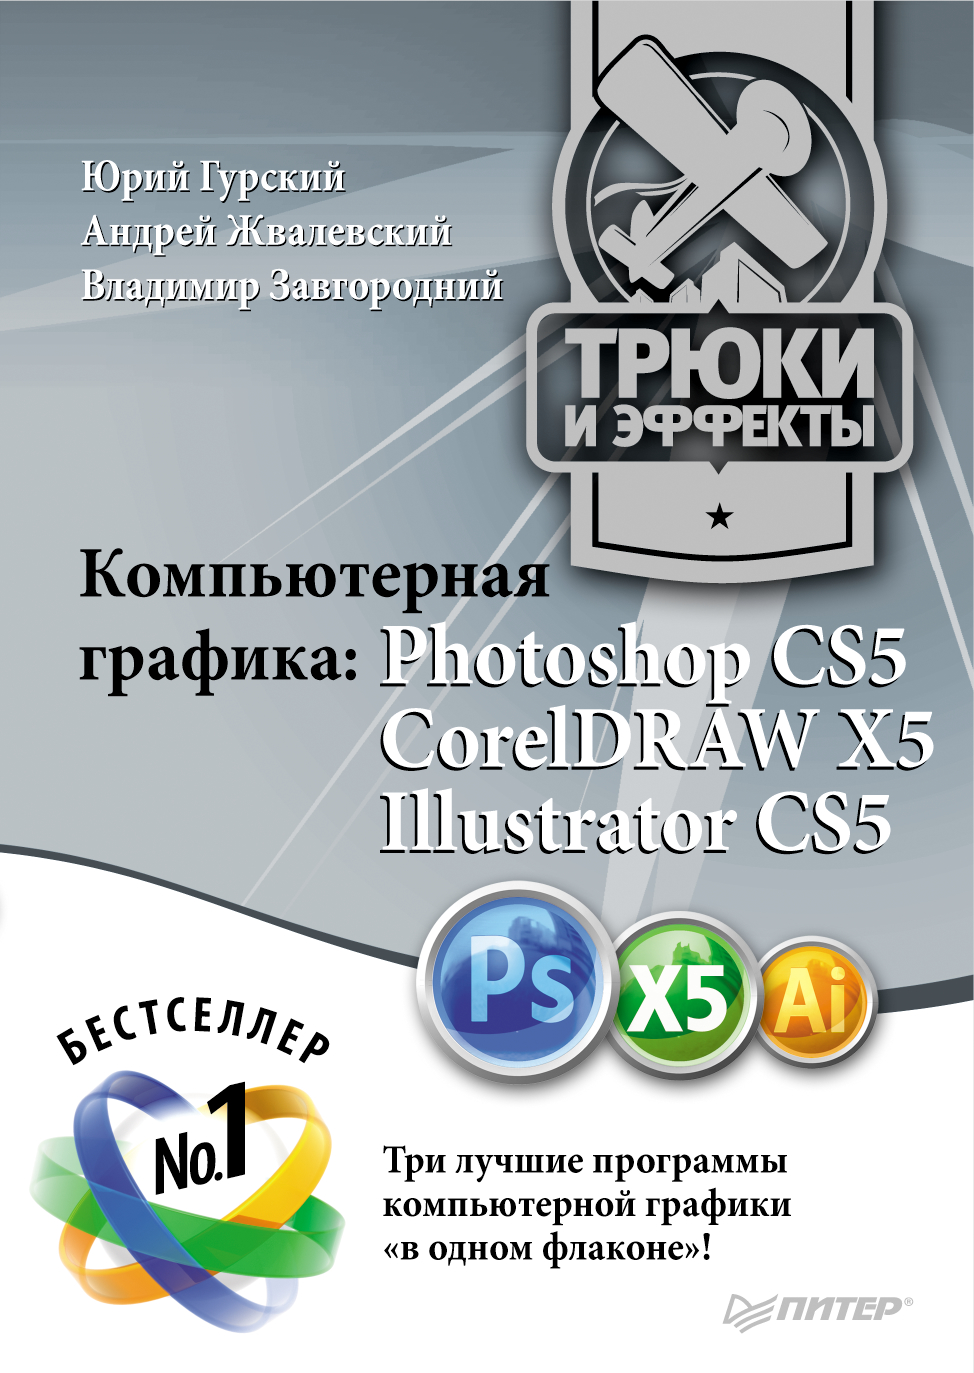 цена на Владимир Завгородний Компьютерная графика. Photoshop CS5, CorelDRAW X5, Illustrator CS5. Трюки и эффекты